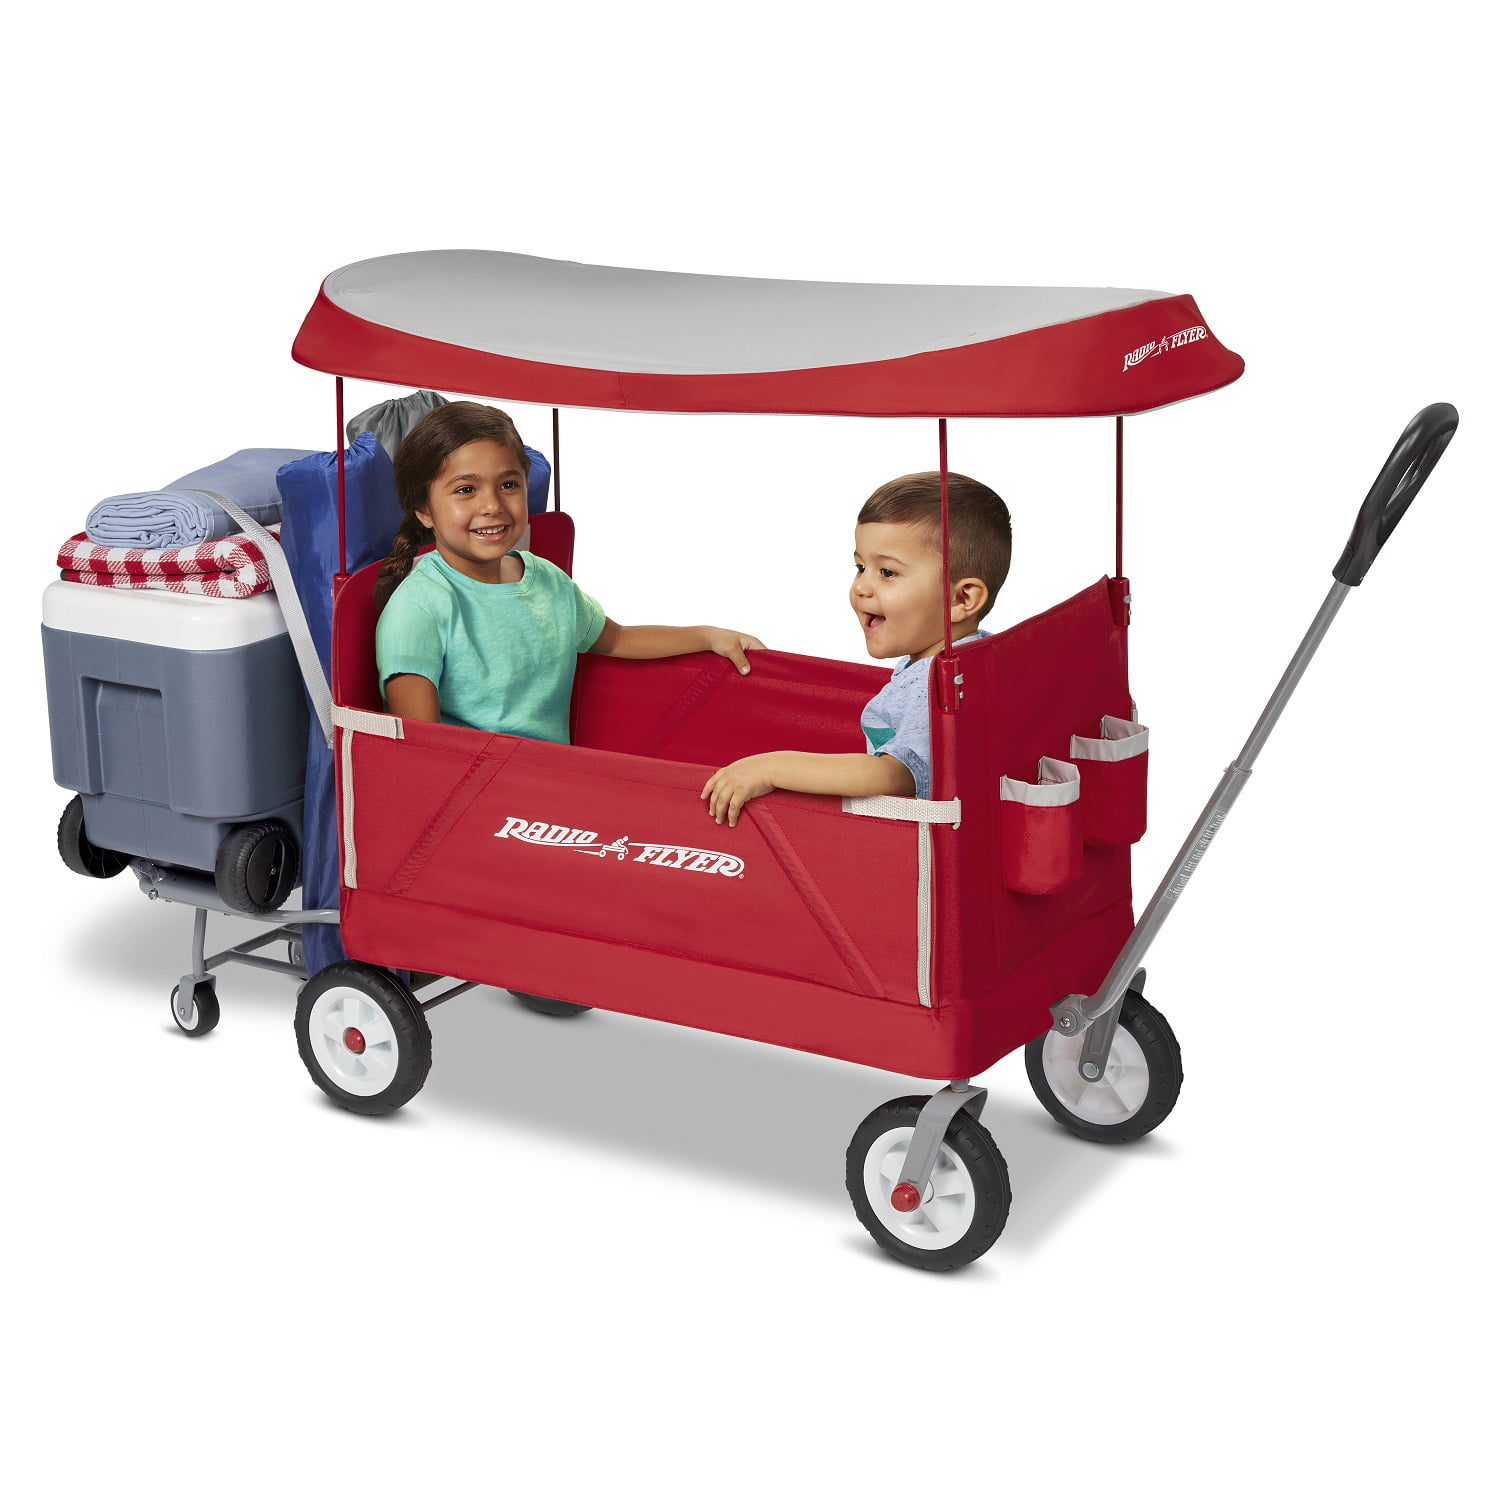 Radio Flyer 3 In 1 Tailgater Wagon With Canopy Folding Wagon Red Walmart Com Walmart Com